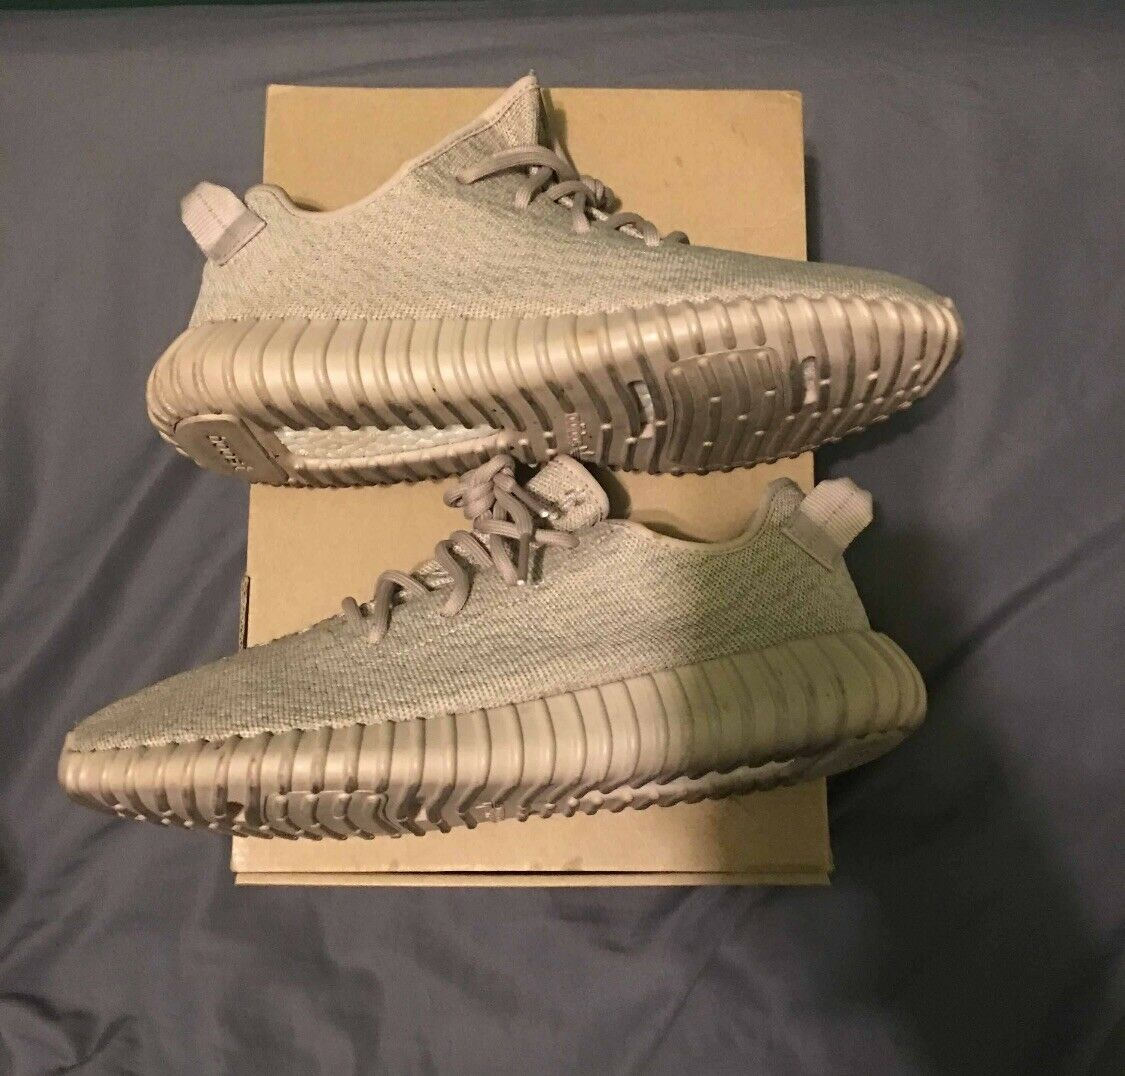 ADIDAS YEEZY 350 OXFORD TAN V1 BOOST size 11 static bred v2 turtle dove pirate